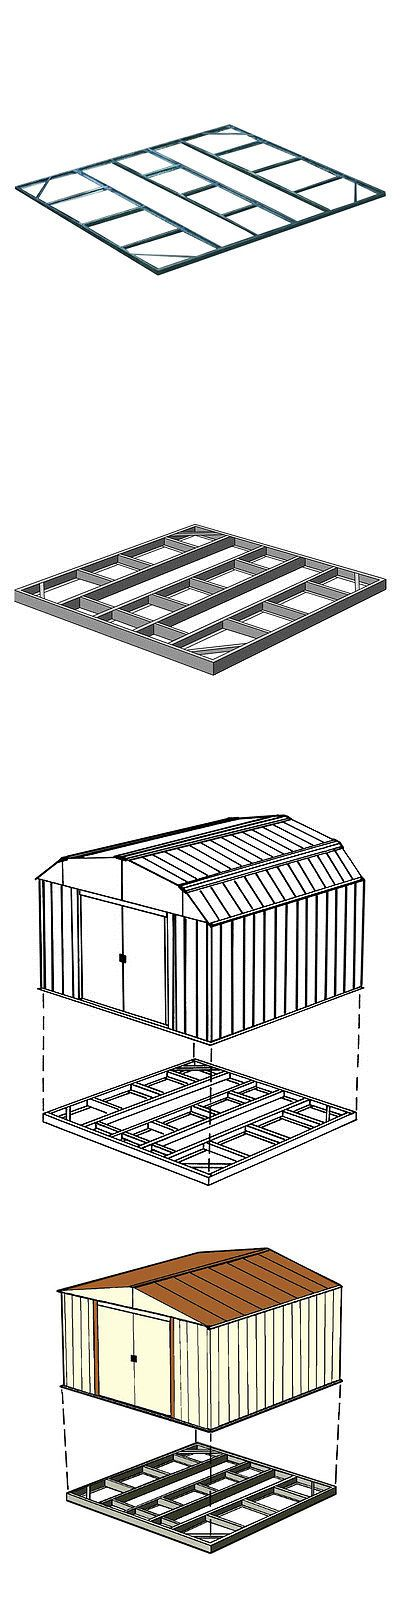 Parts and Accessories 178978: Arrow Storage Fdn106 - Base Kit For 4 X10 , 8 X6 And 10 X6 Sheds -> BUY IT NOW ONLY: $91.8 on eBay!